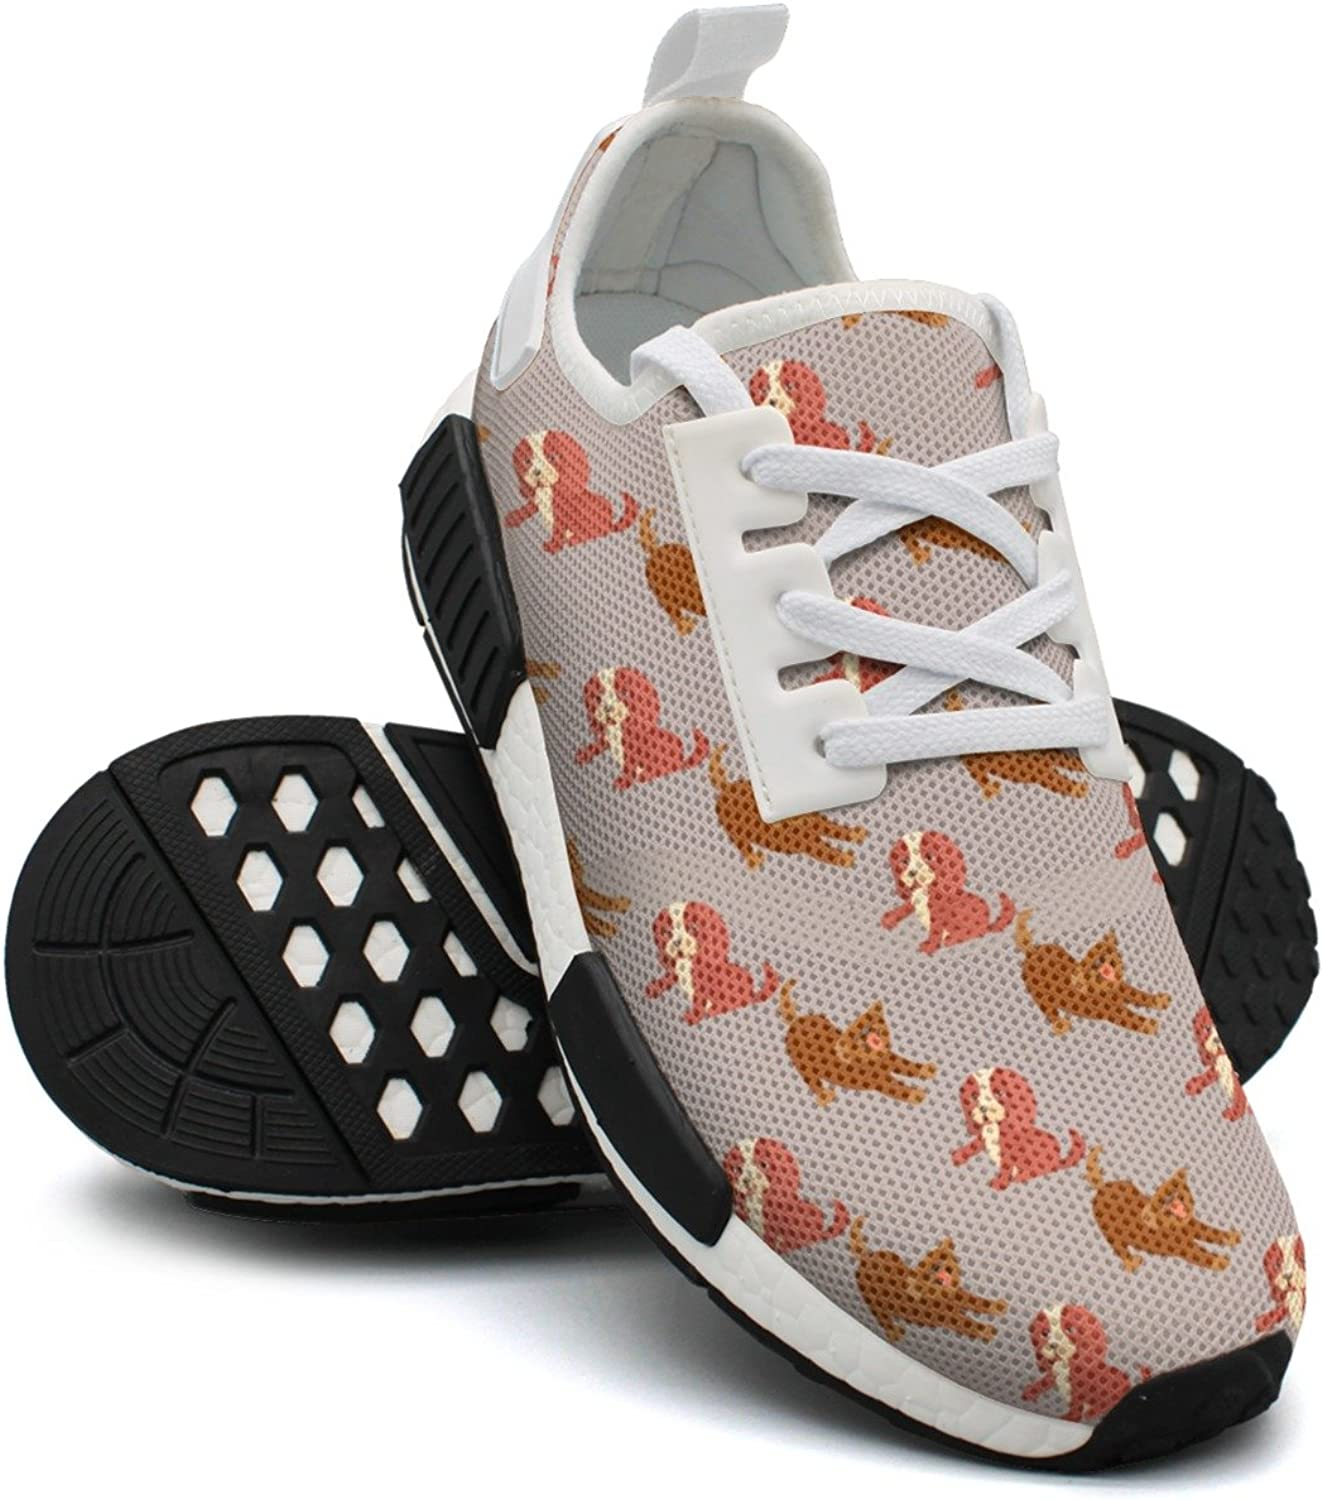 Cartoon Cavalier King Charles Spaniel Womens Jogging shoes Nmd Sport Tennis shoes